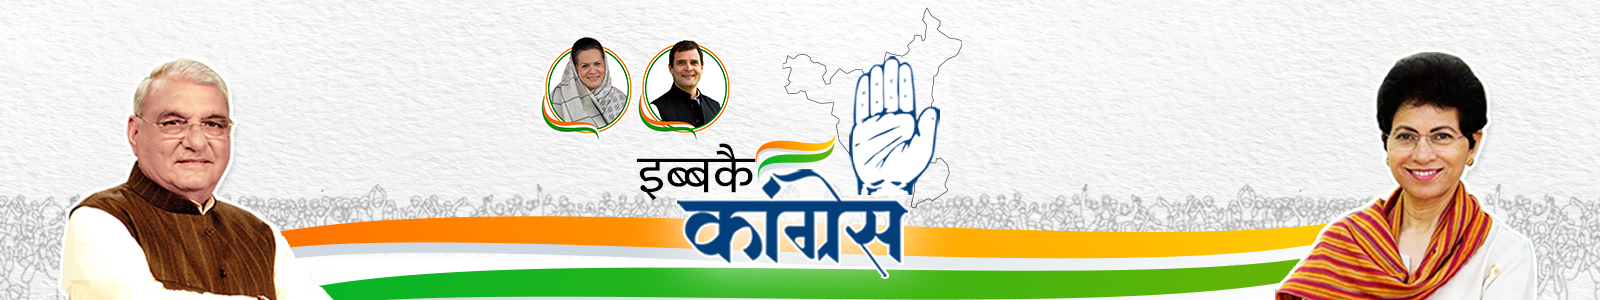 Ebbke Congress   Election Campaign Management Company India   Design Boxed Creatives